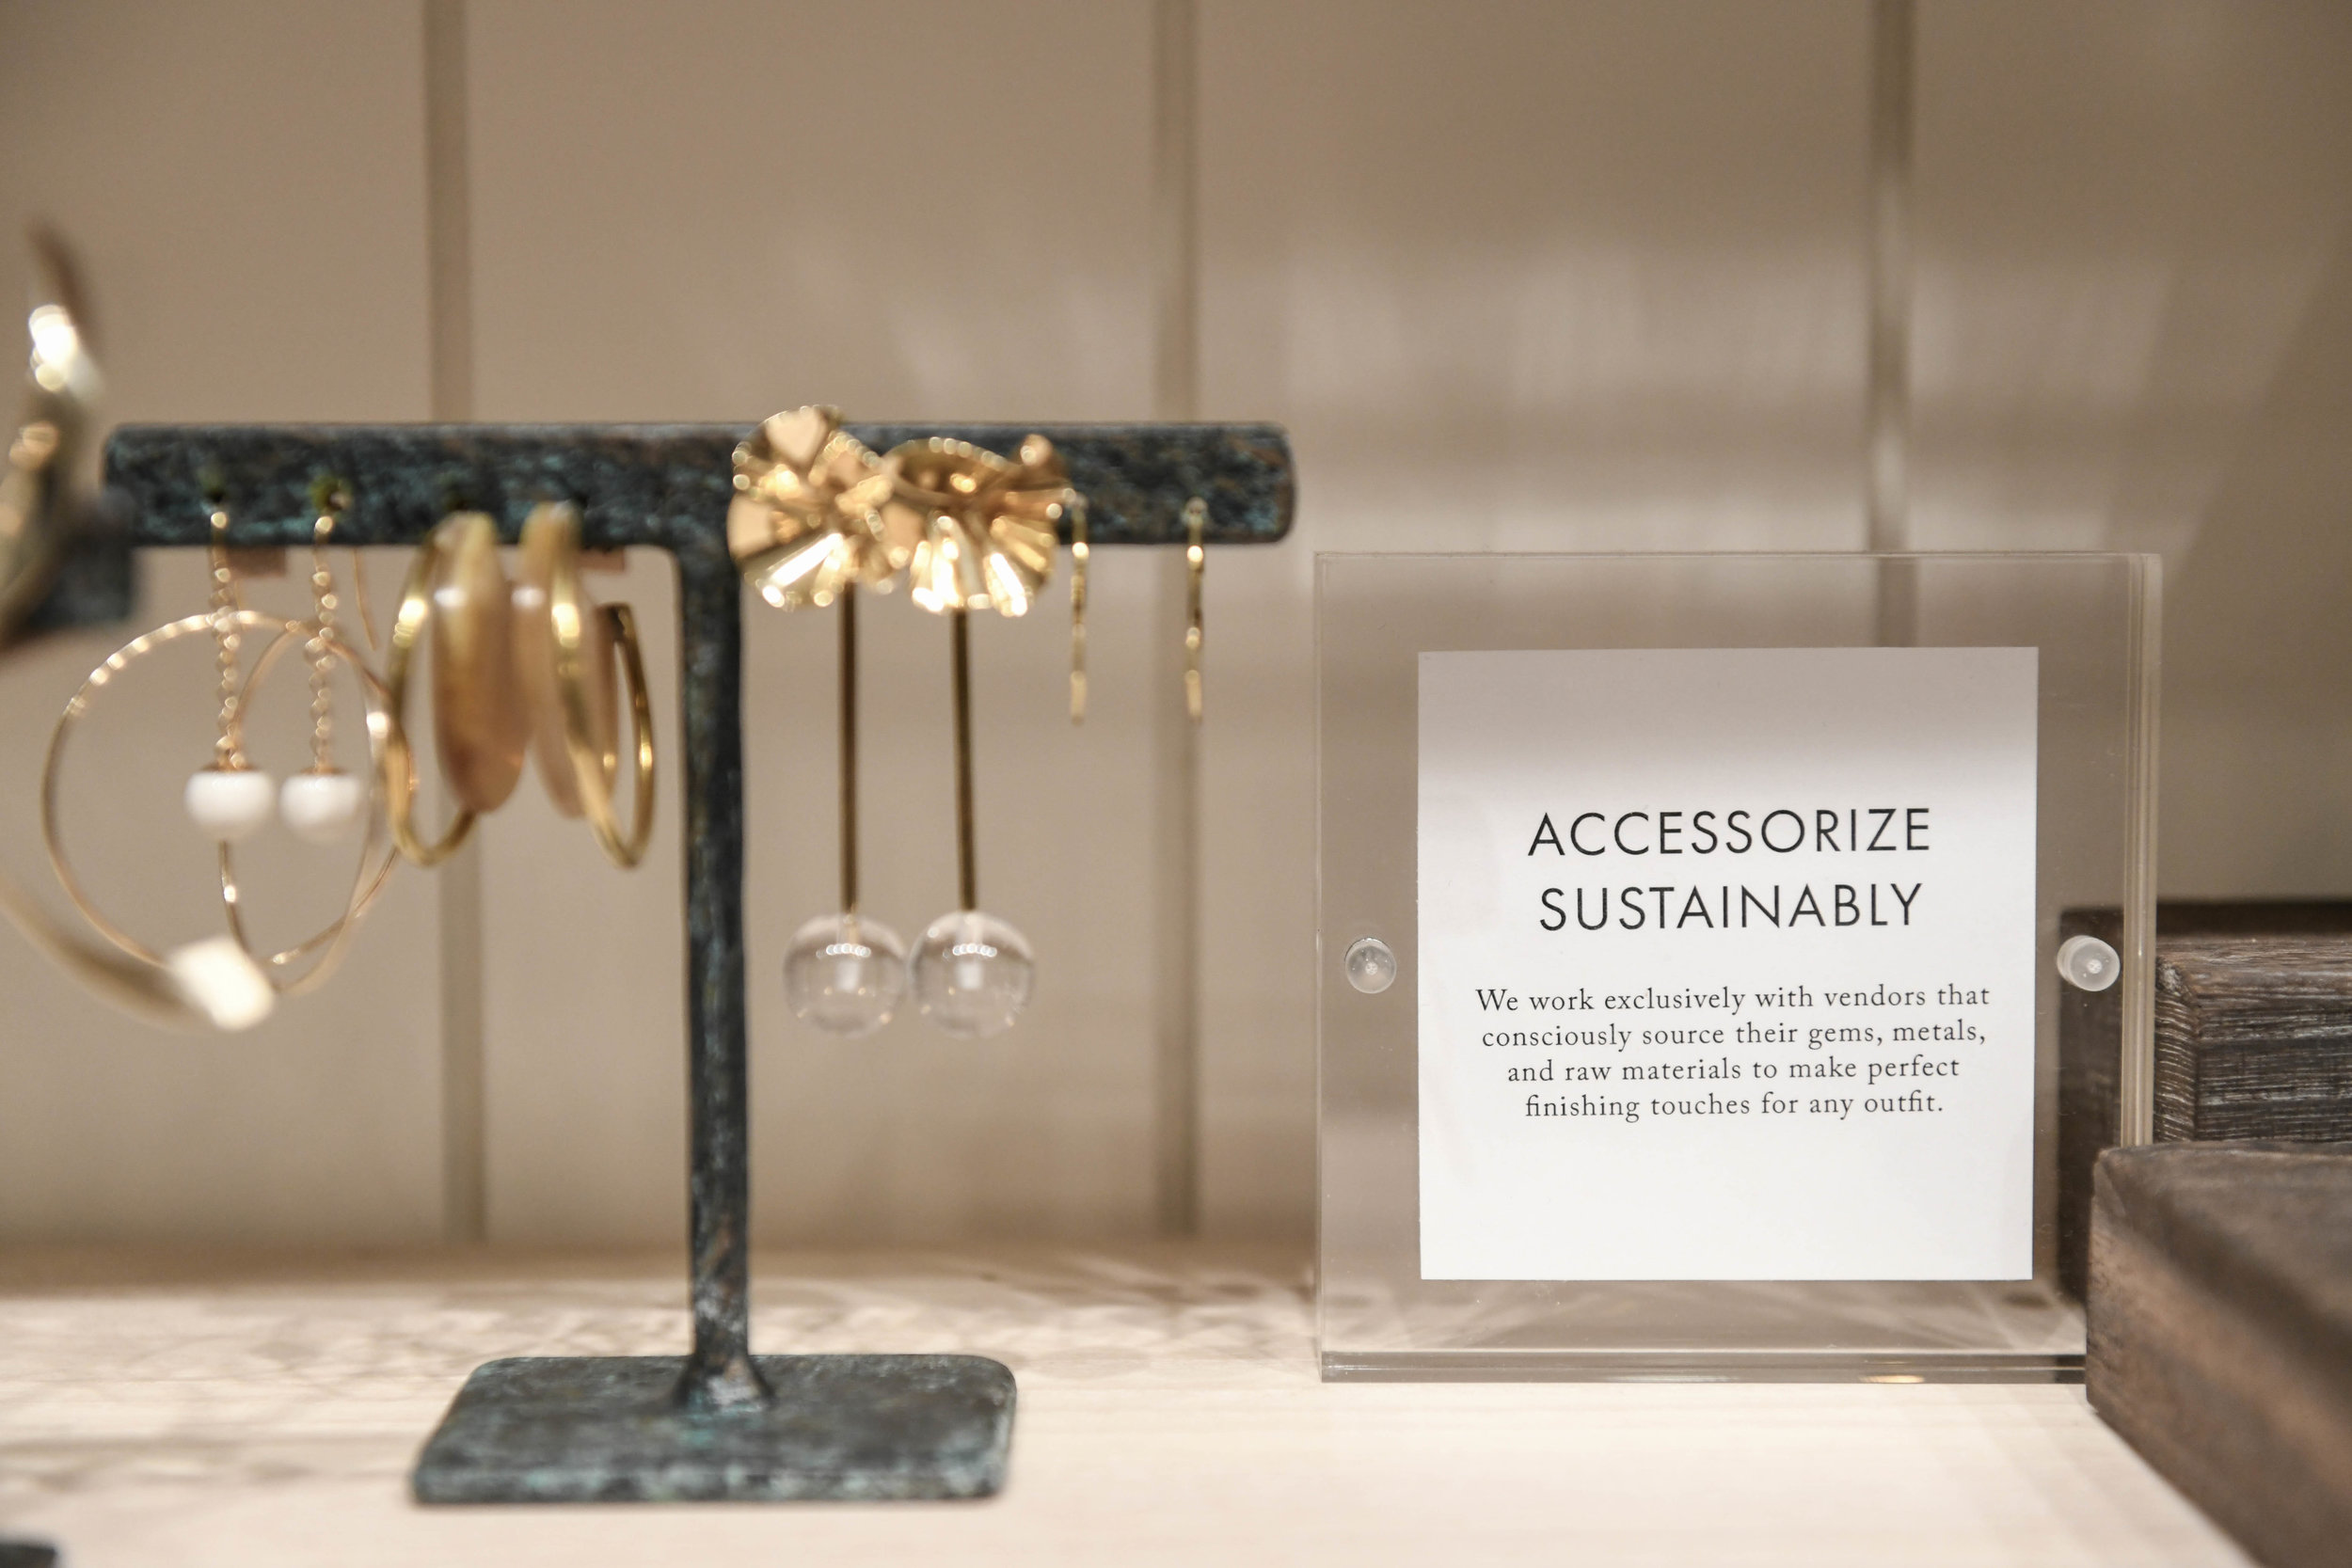 SustainableAccessories.jpg